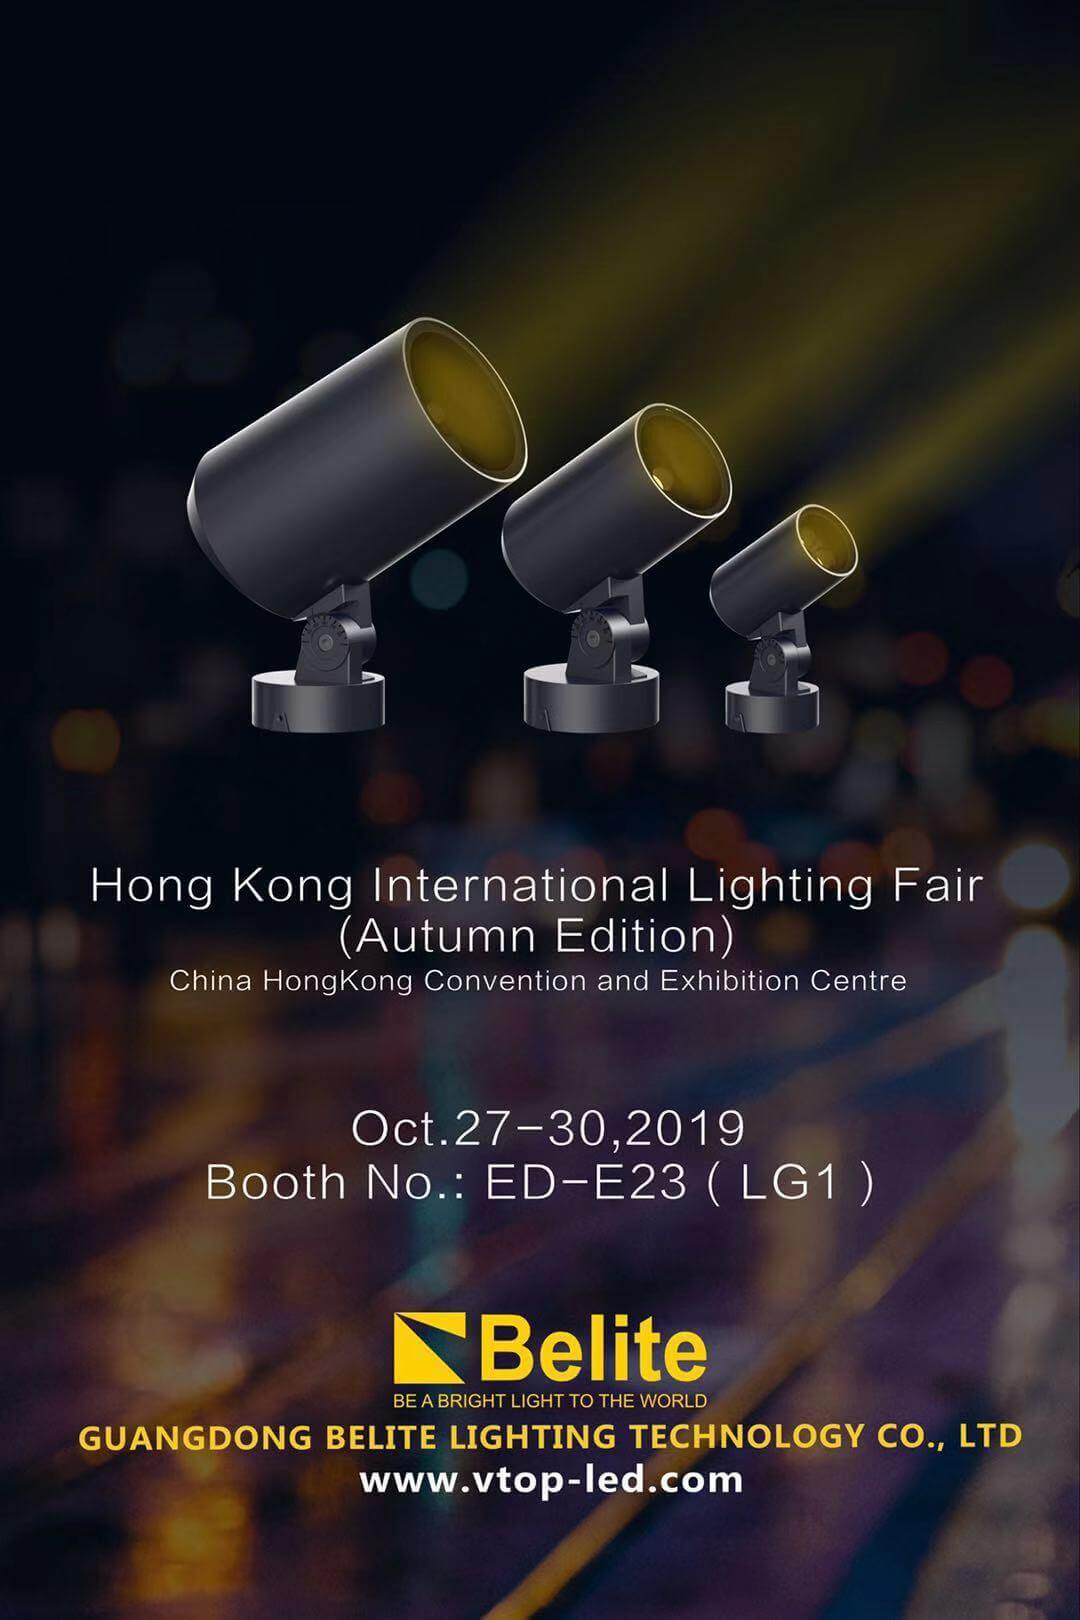 Hong Kong International Lighting Fair Invitation